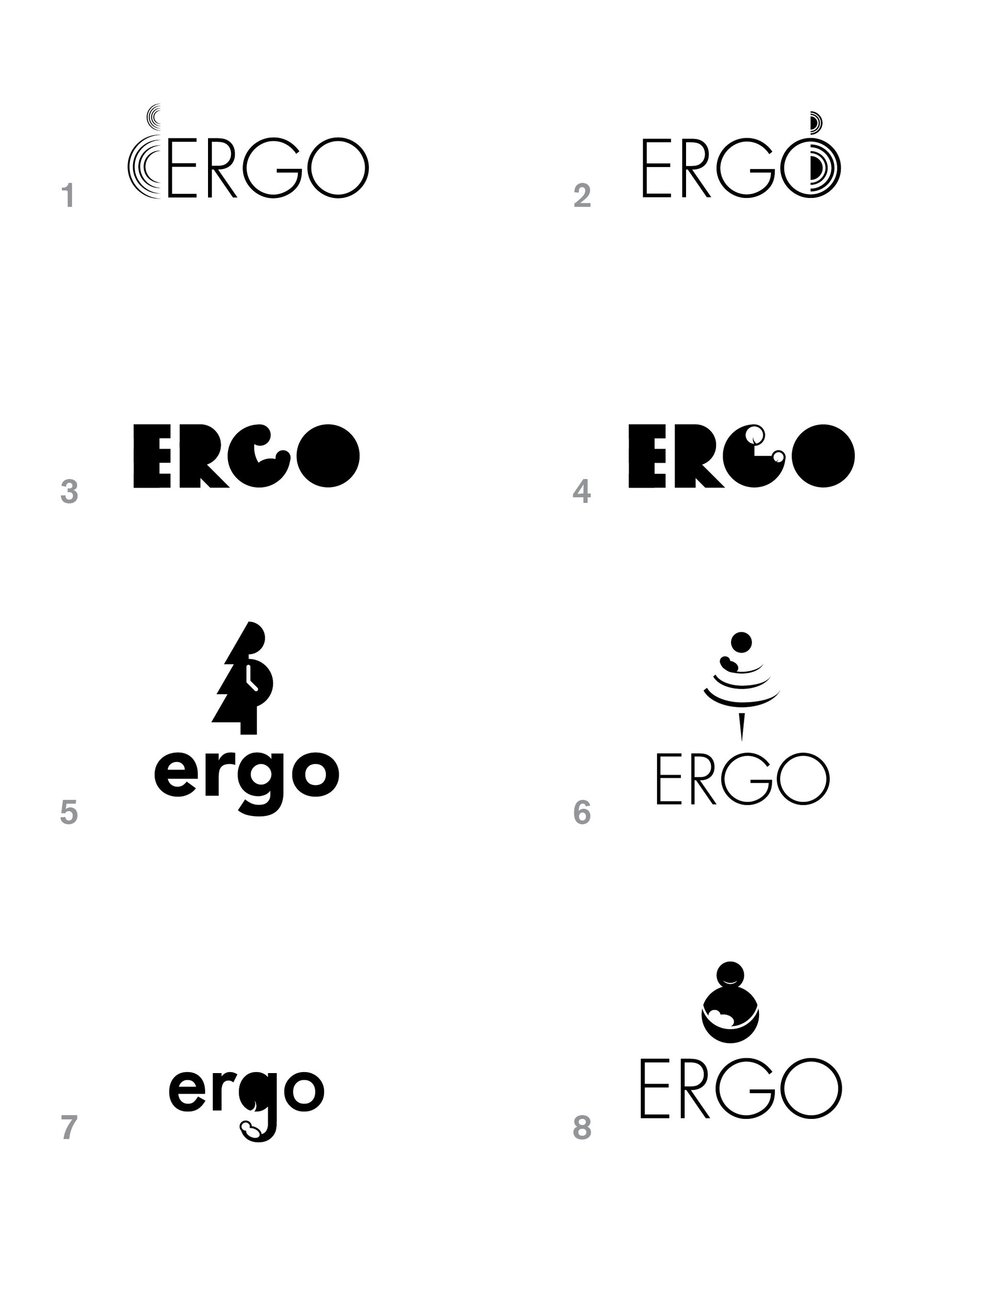 Ergo_Revised.jpg